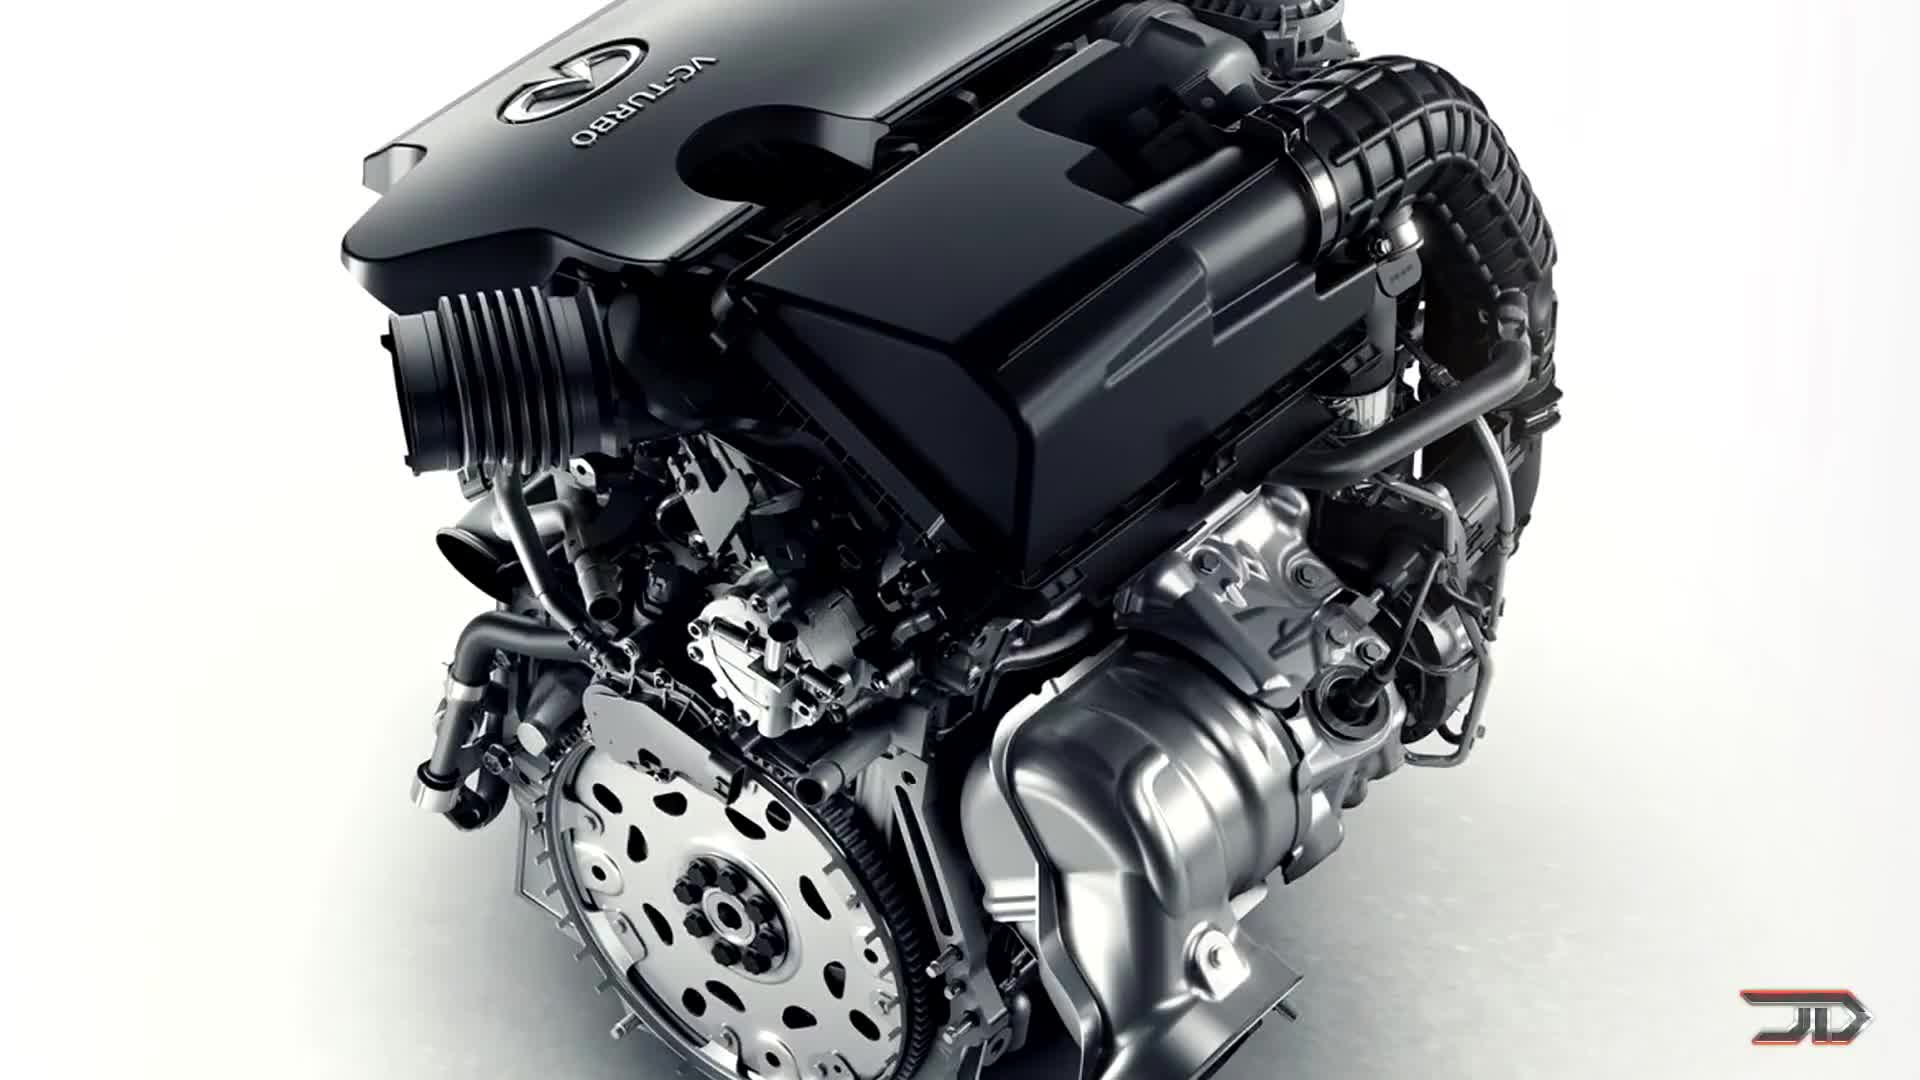 big engines, engine breakthrough, engine news, engine running, engine starting, engine tech, free energy motor, funny engines, liquid piston, magnet motor, new engines, new type of engine, odd engines, opposing piston engine, powerful engines, rotor engines, see through engines, strange engines, unusual engines, weird engines, Mechanism of VC Turbo GIFs